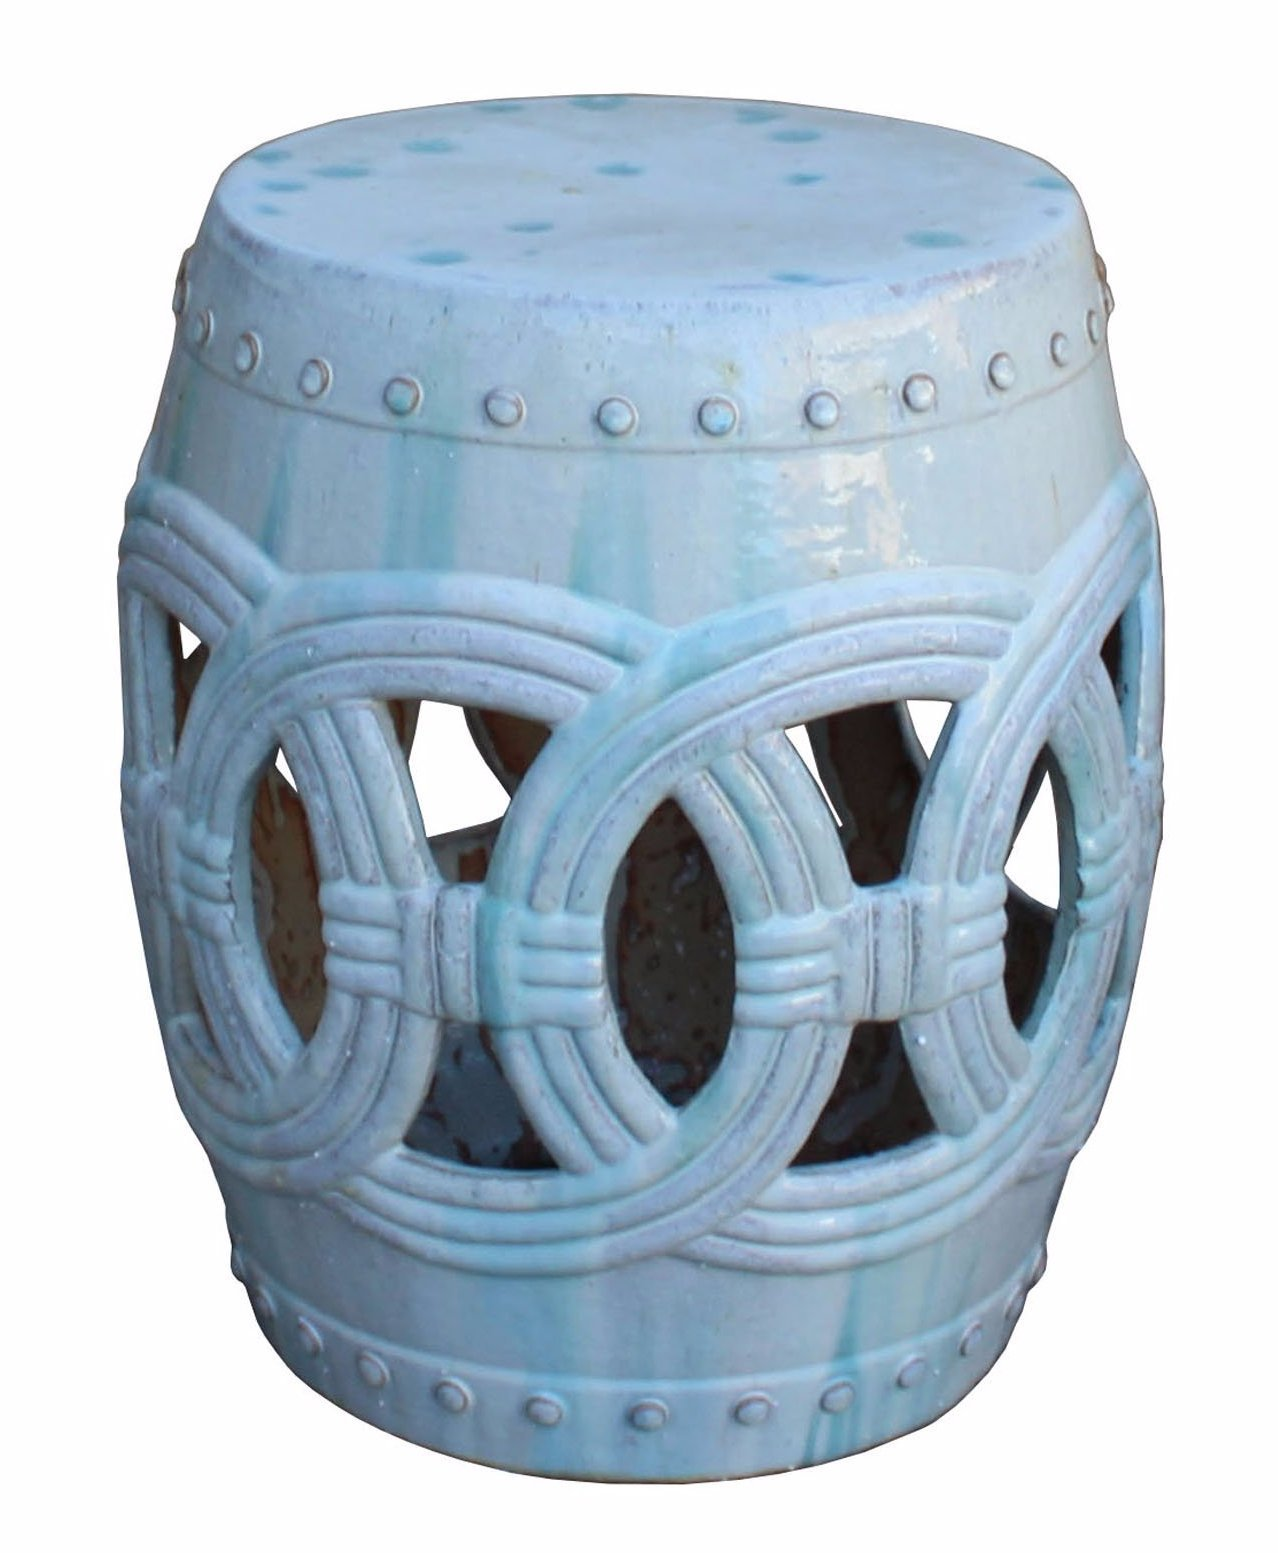 Chinese White Coin Pattern Round Clay Ceramic Garden Stool